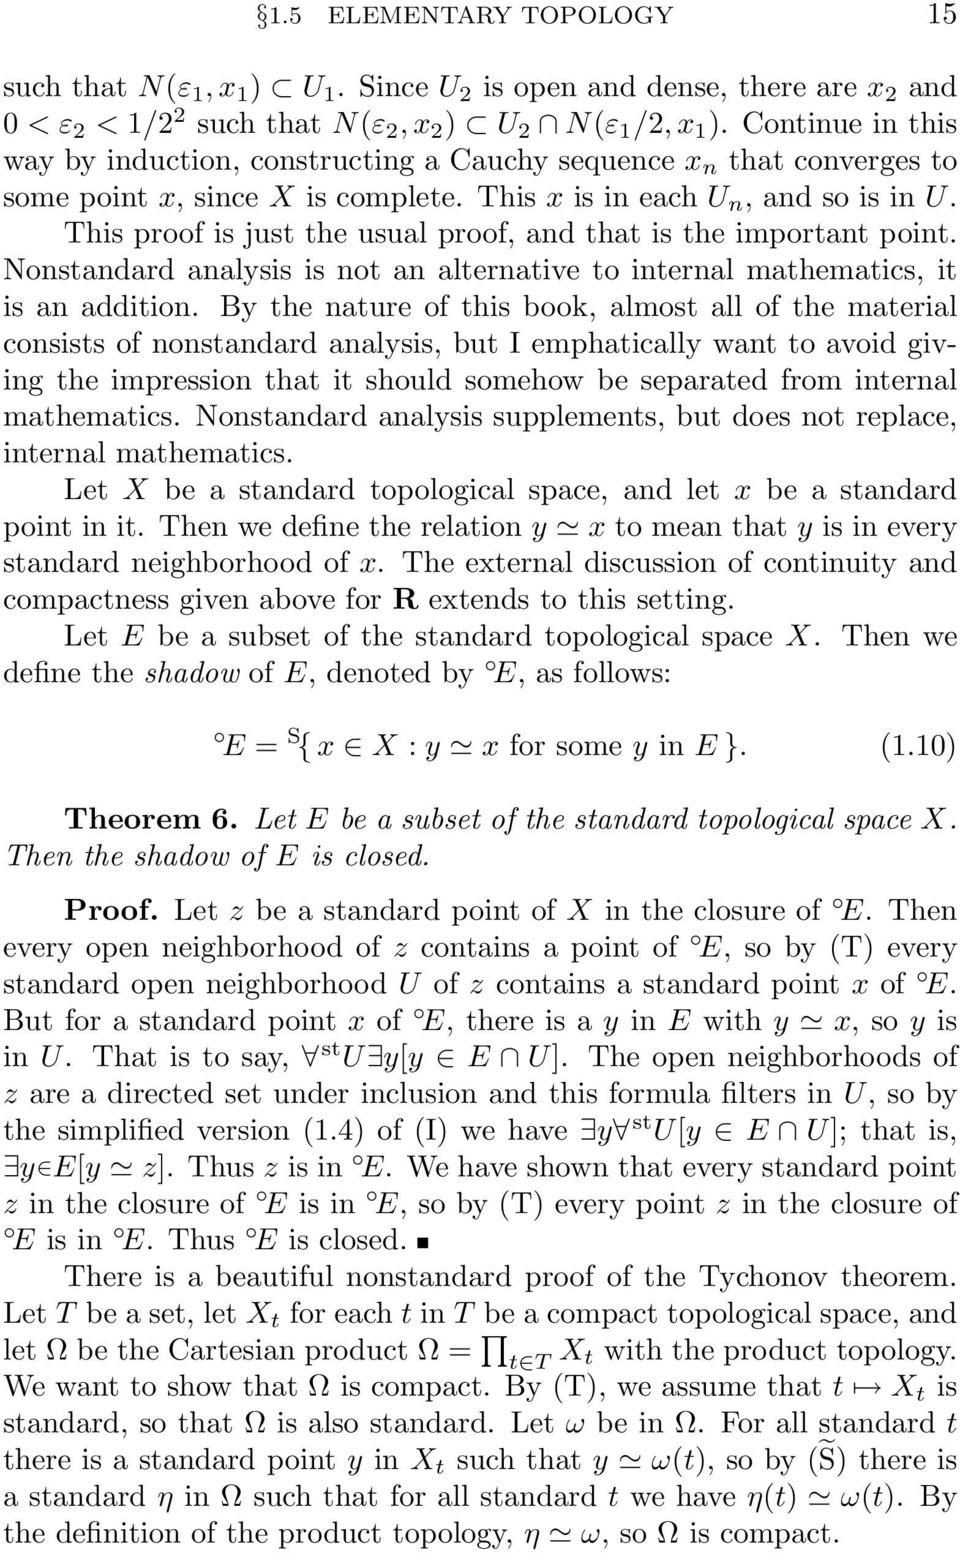 This proof is just the usual proof, and that is the important point. Nonstandard analysis is not an alternative to internal mathematics, it is an addition.